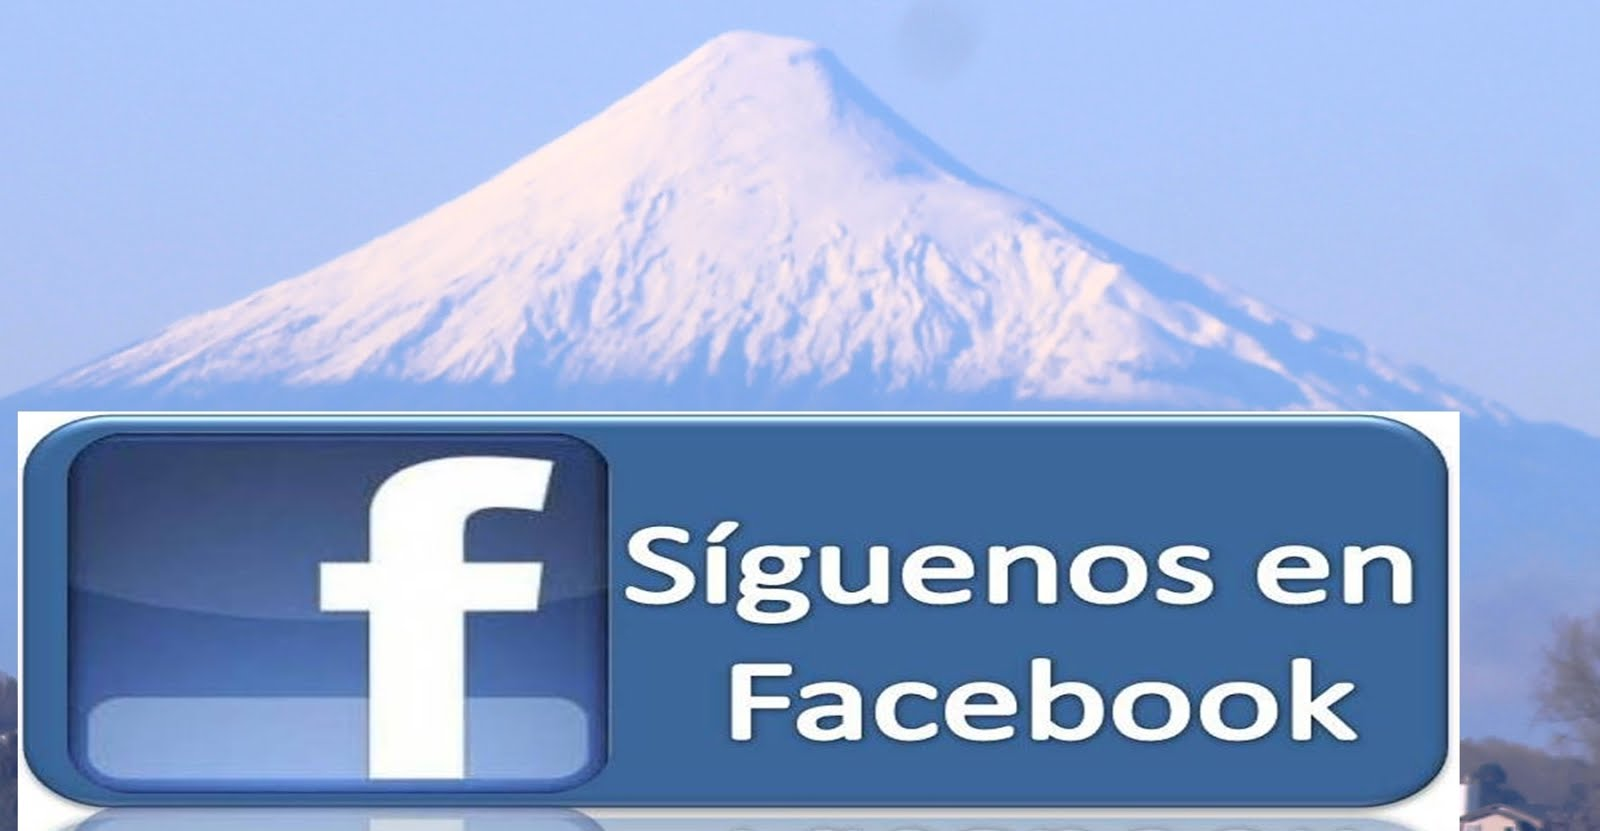 Suguenos en Faceboook